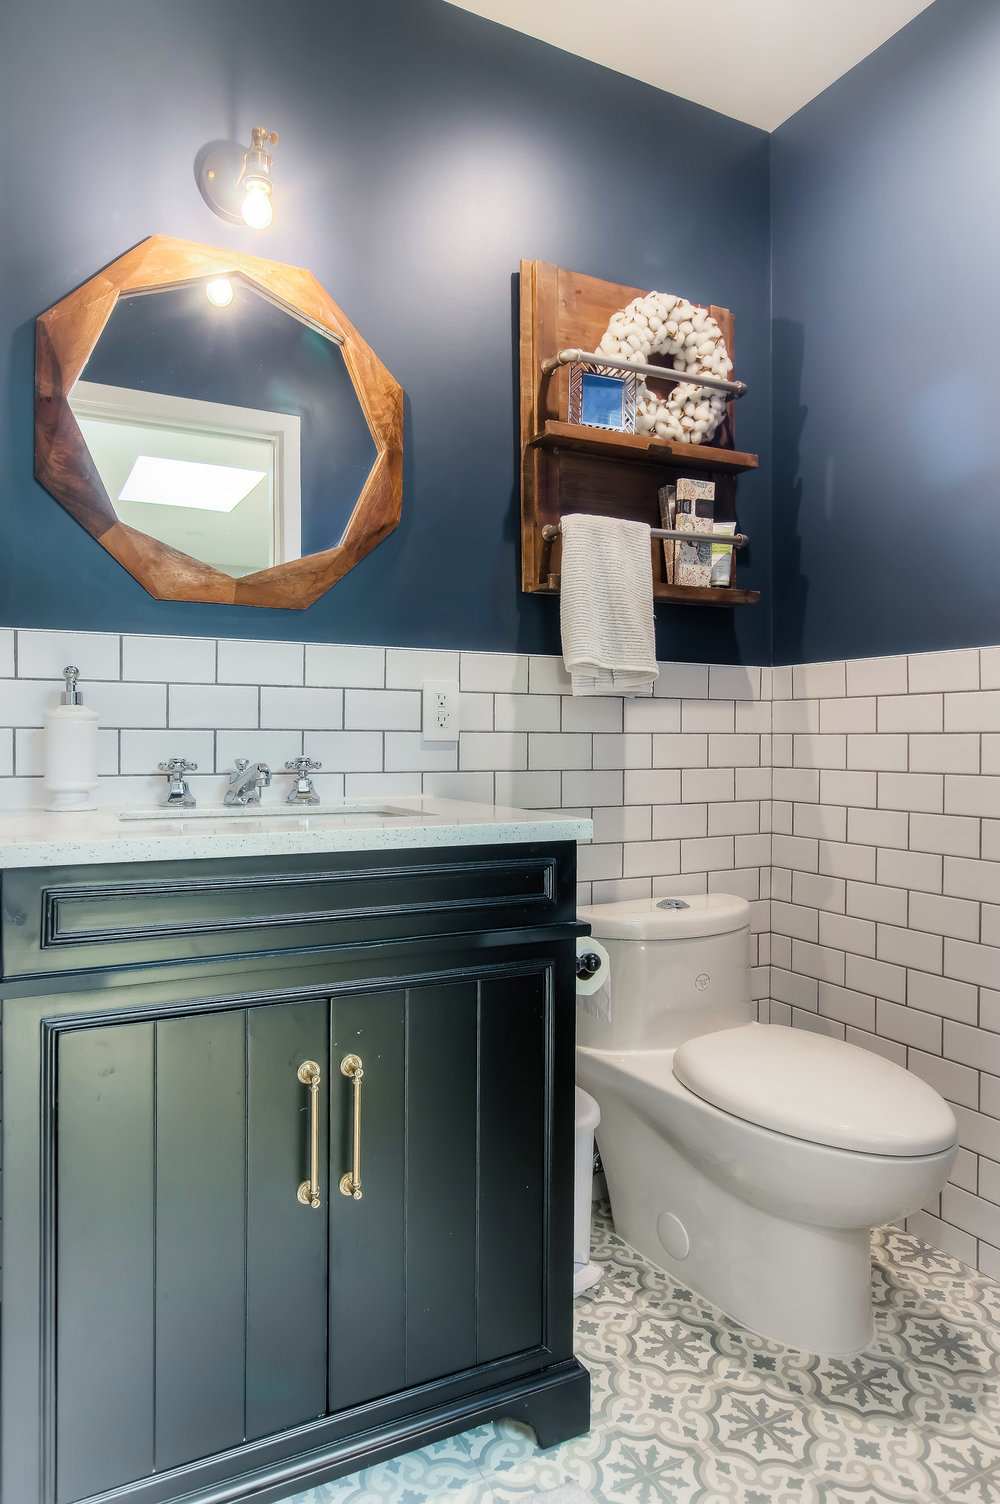 Altadena cottage bathroom remodel